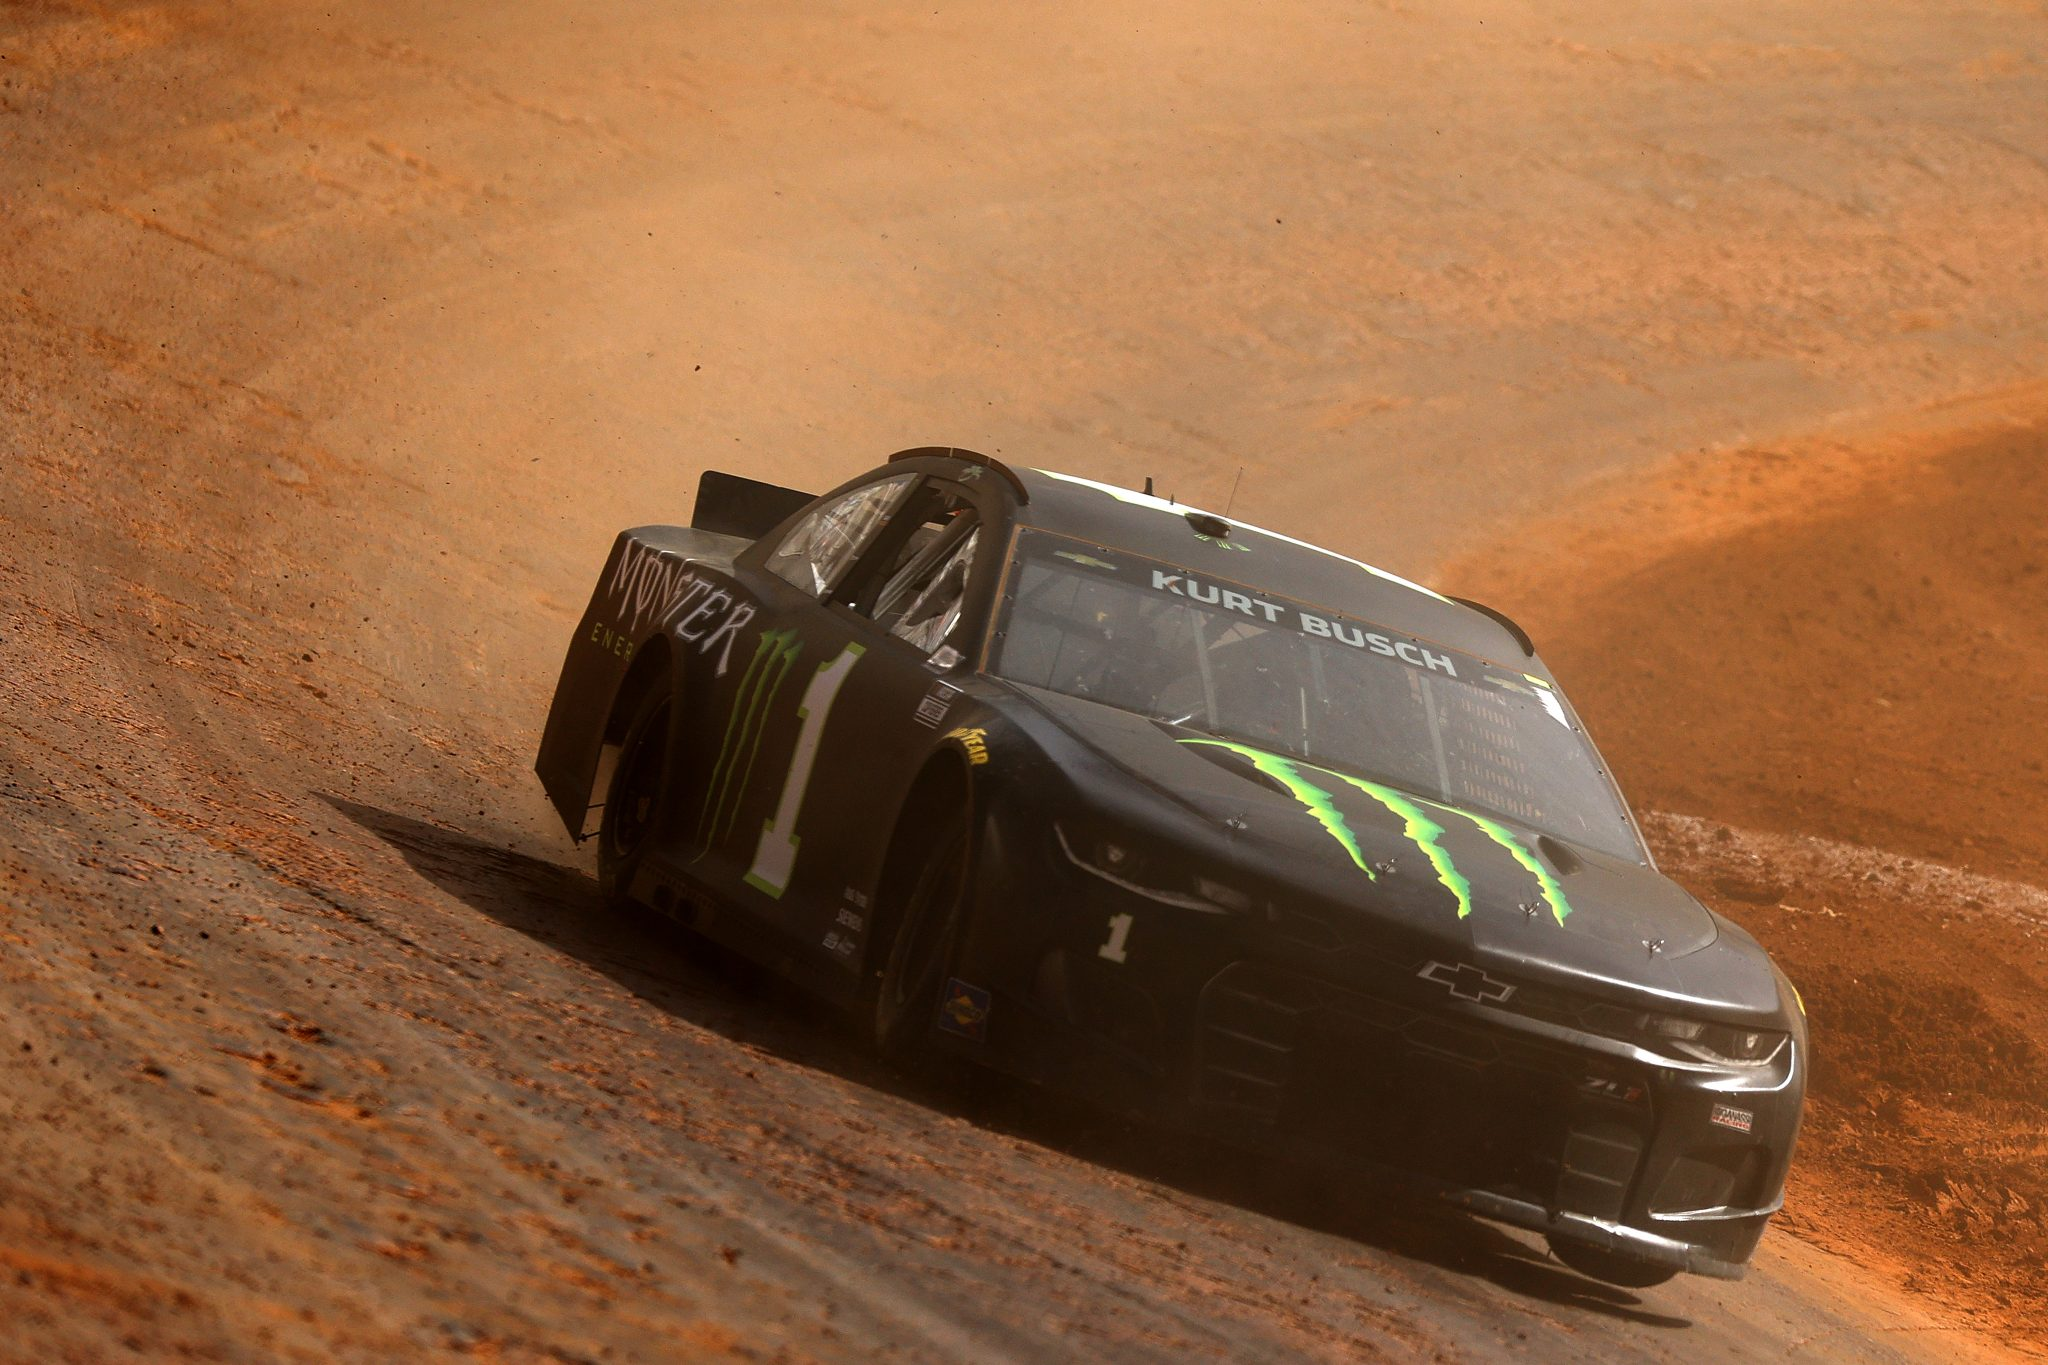 BRISTOL, TENNESSEE - MARCH 26: Kurt Busch, driver of the #1 Monster Energy Chevrolet, drives during practice for the NASCAR Cup Series Food City Dirt Race at Bristol Motor Speedway on March 26, 2021 in Bristol, Tennessee. (Photo by Jared C. Tilton/Getty Images) | Getty Images